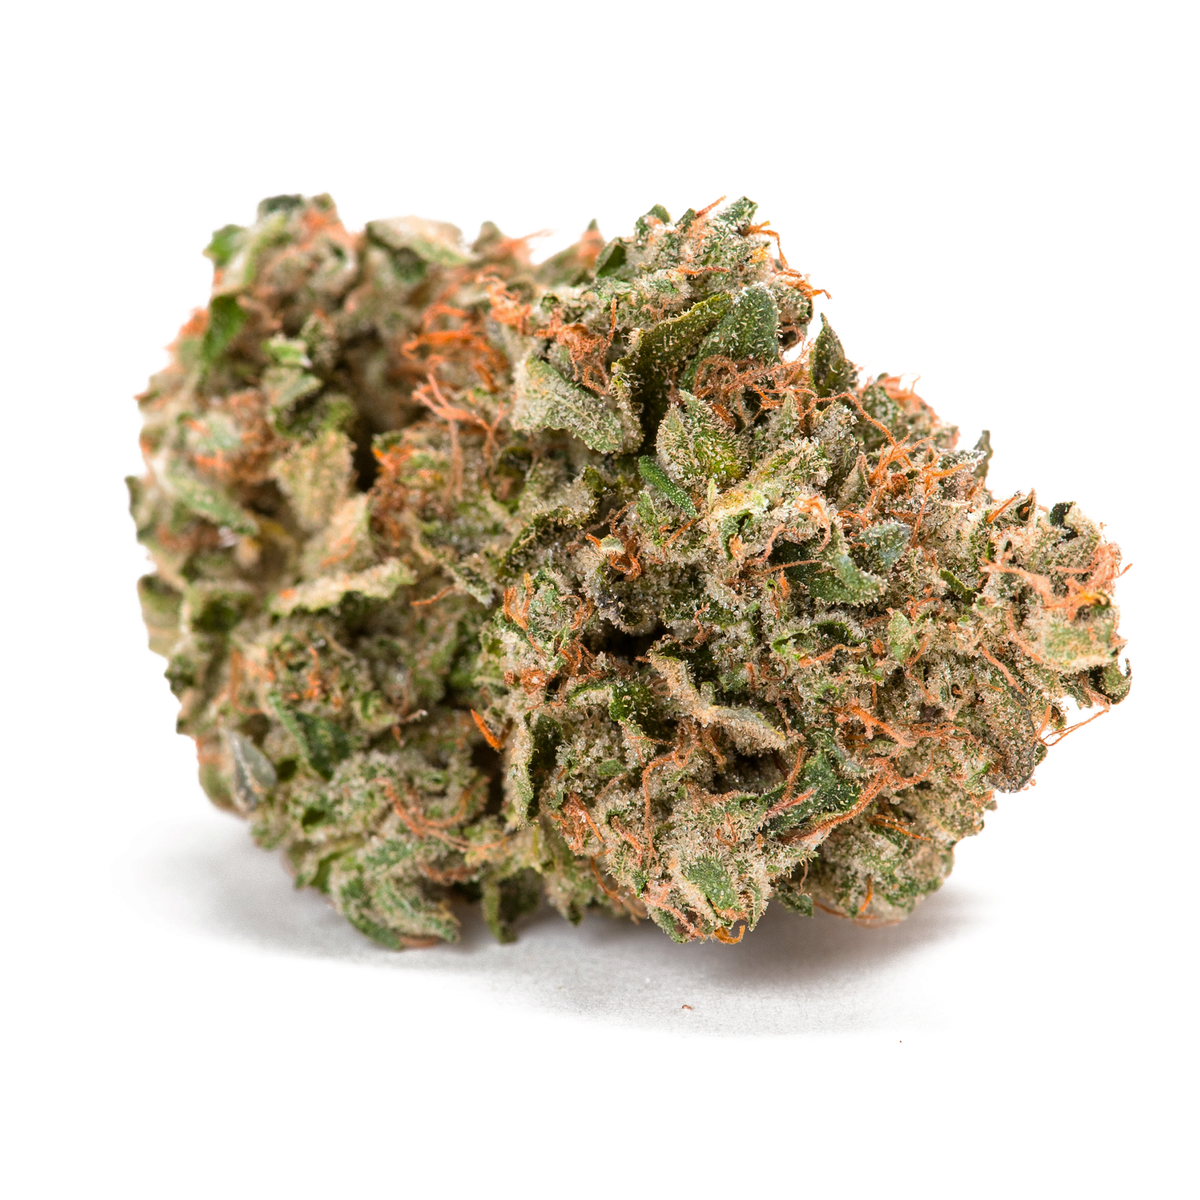 Descendant of Sensi Star and Rockbud, Grail Rockstar is a go-to for heavy indica lovers. Aromas of spice and grape provide a unique bouquet that can take you beyond the couch and kick off your night. THC 21-24% CBD 0-1%. Sold by Prairie Records. Find it in Warman and Saskatchewan.